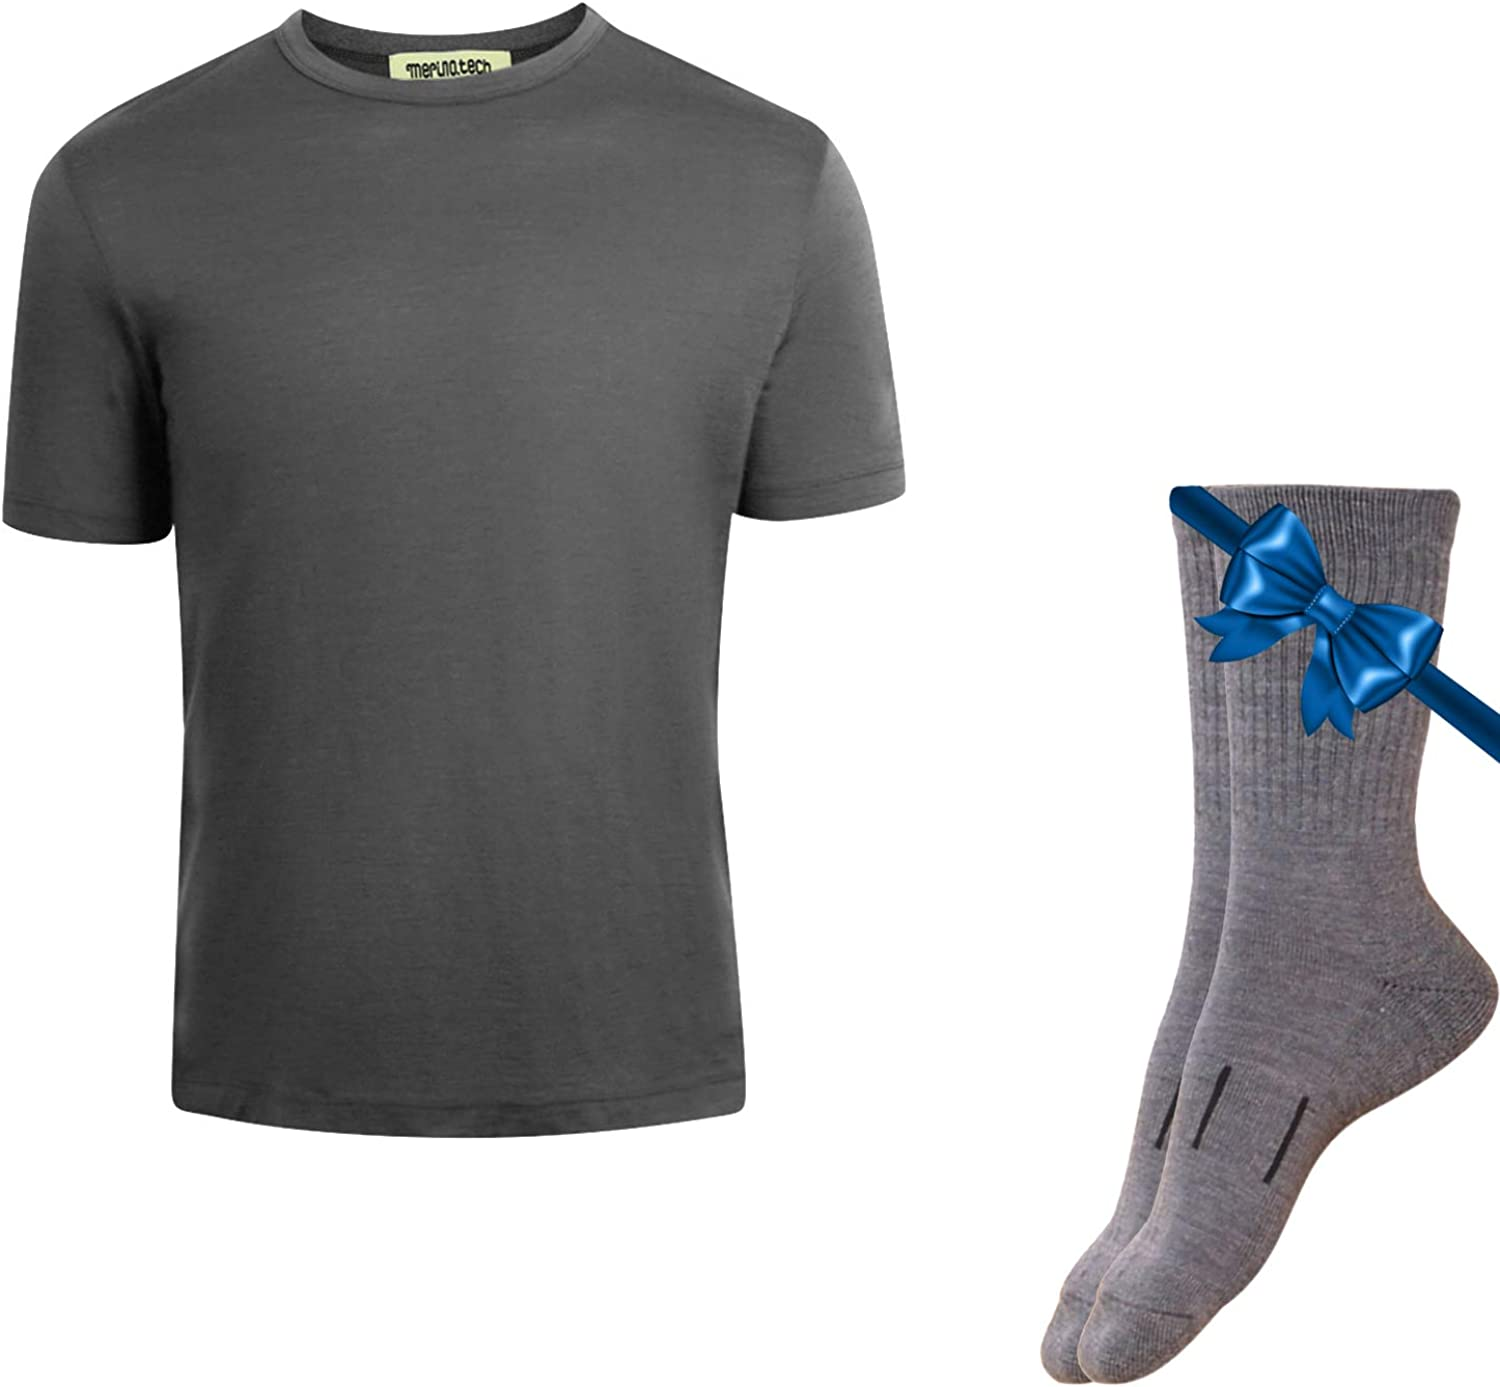 Merino.tech 100% Organic Merino Wool Lightweight Men's Base Layer Thermal T-Shirt + Hiking Wool Socks